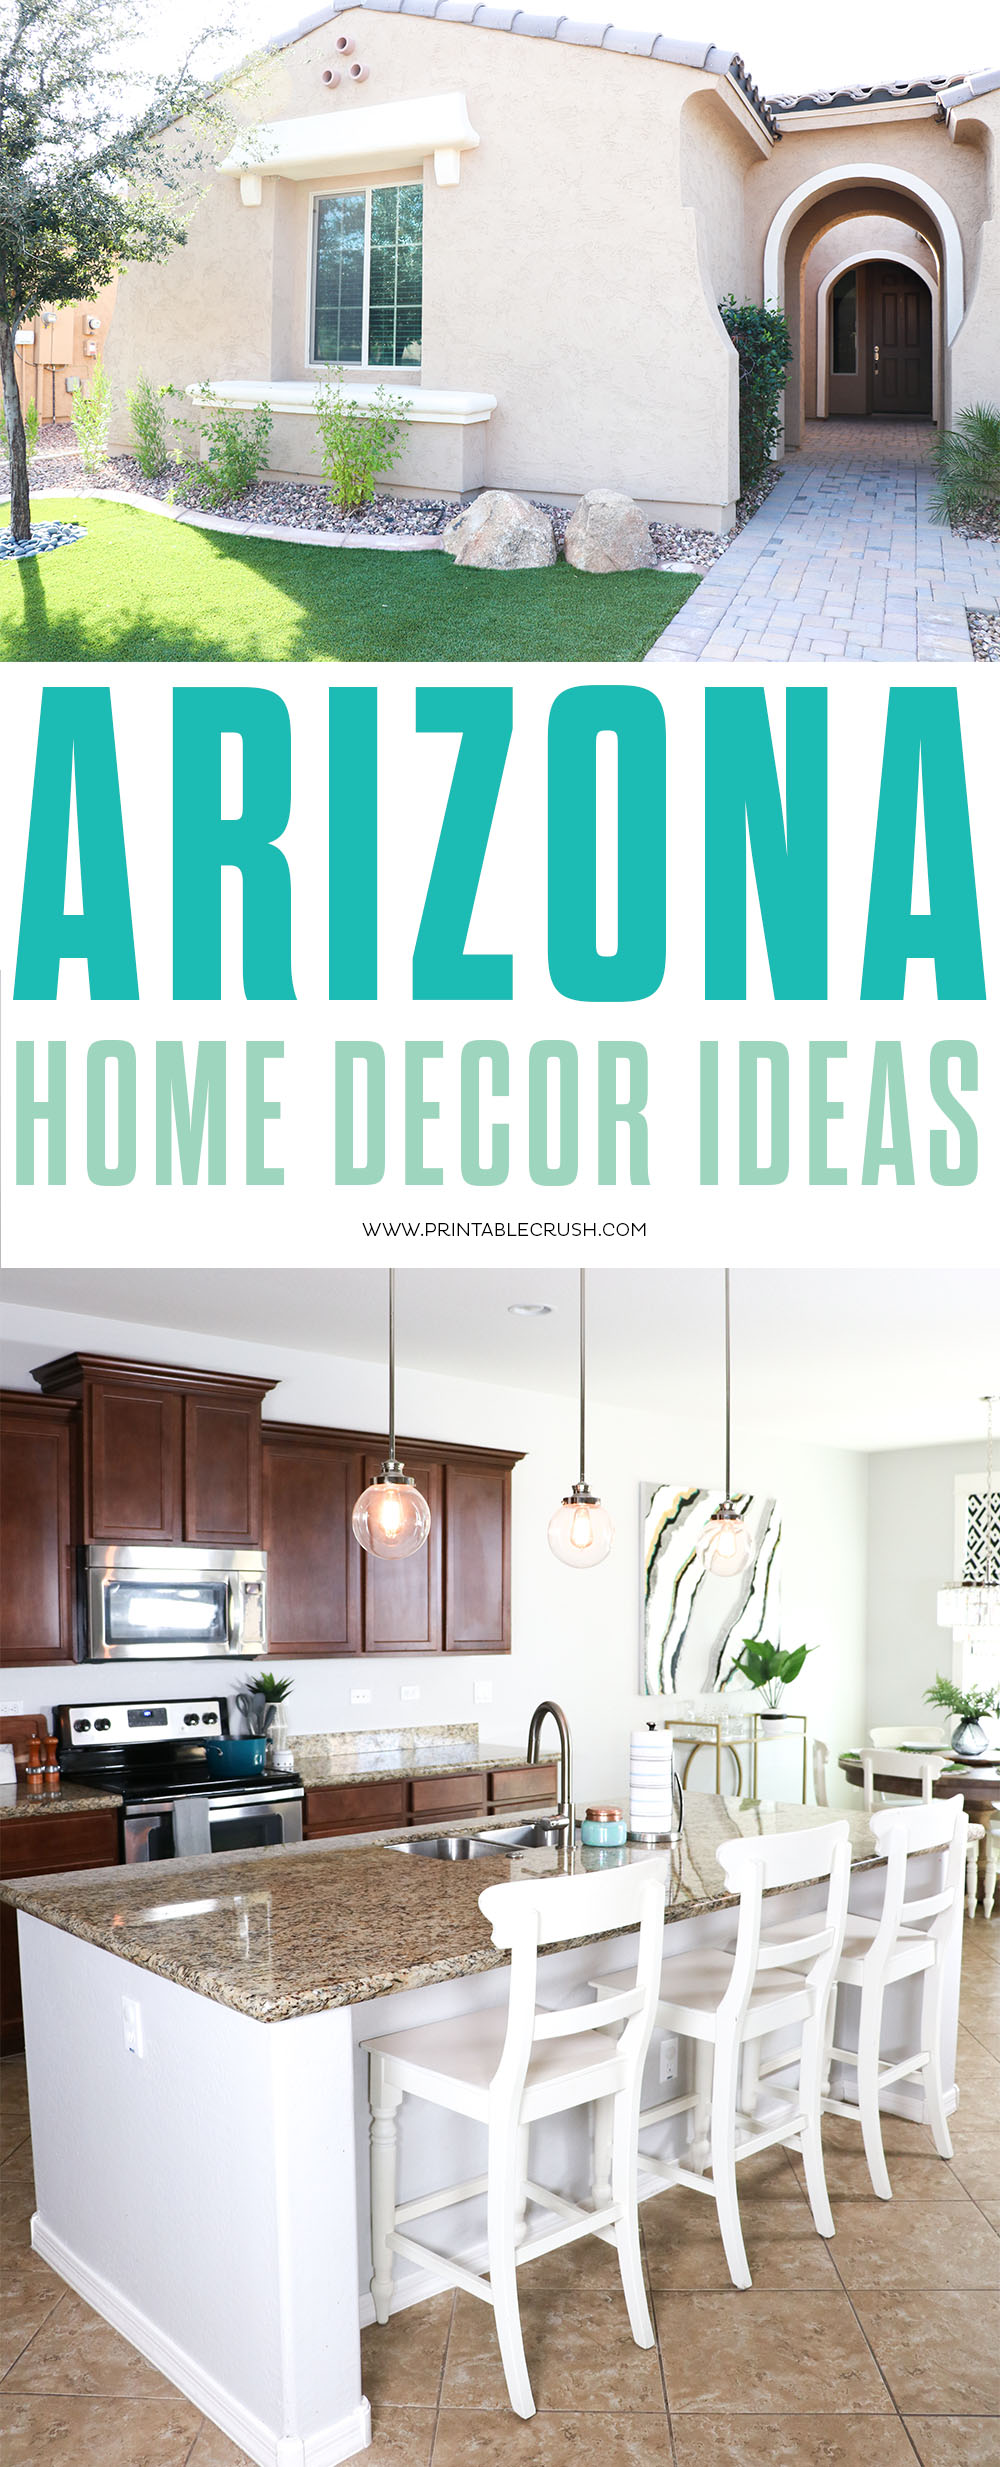 Arizona Home Decor Ideas Printable Crush - Home-decorate-ideas